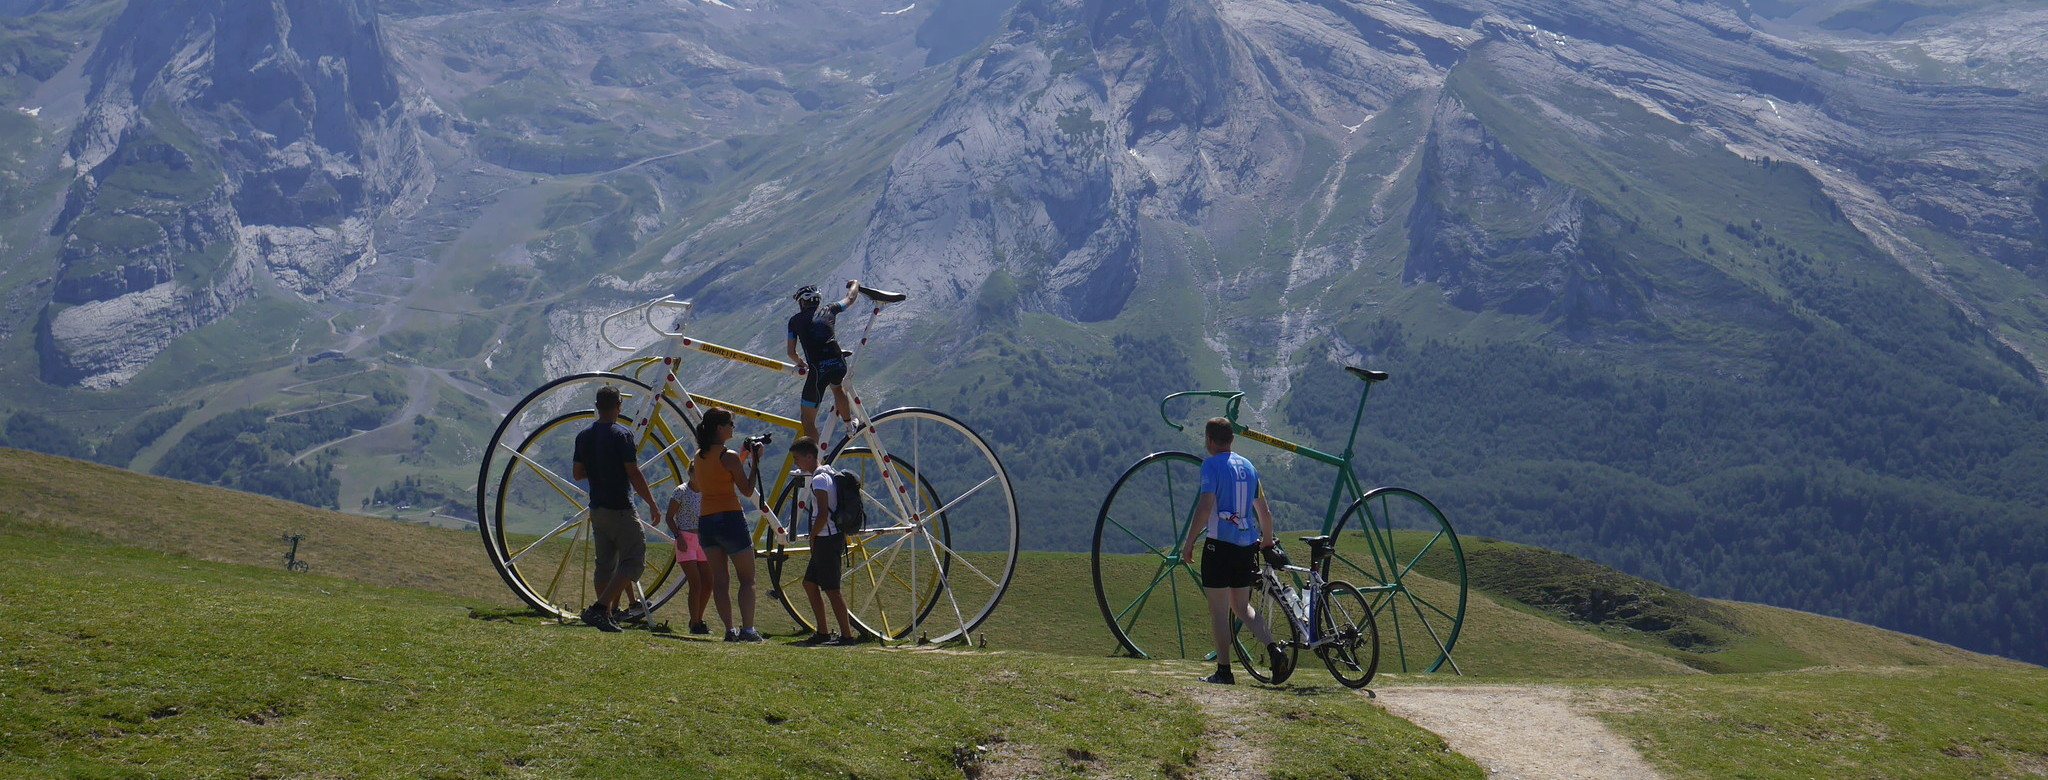 Tour thrills on the Aubisque.